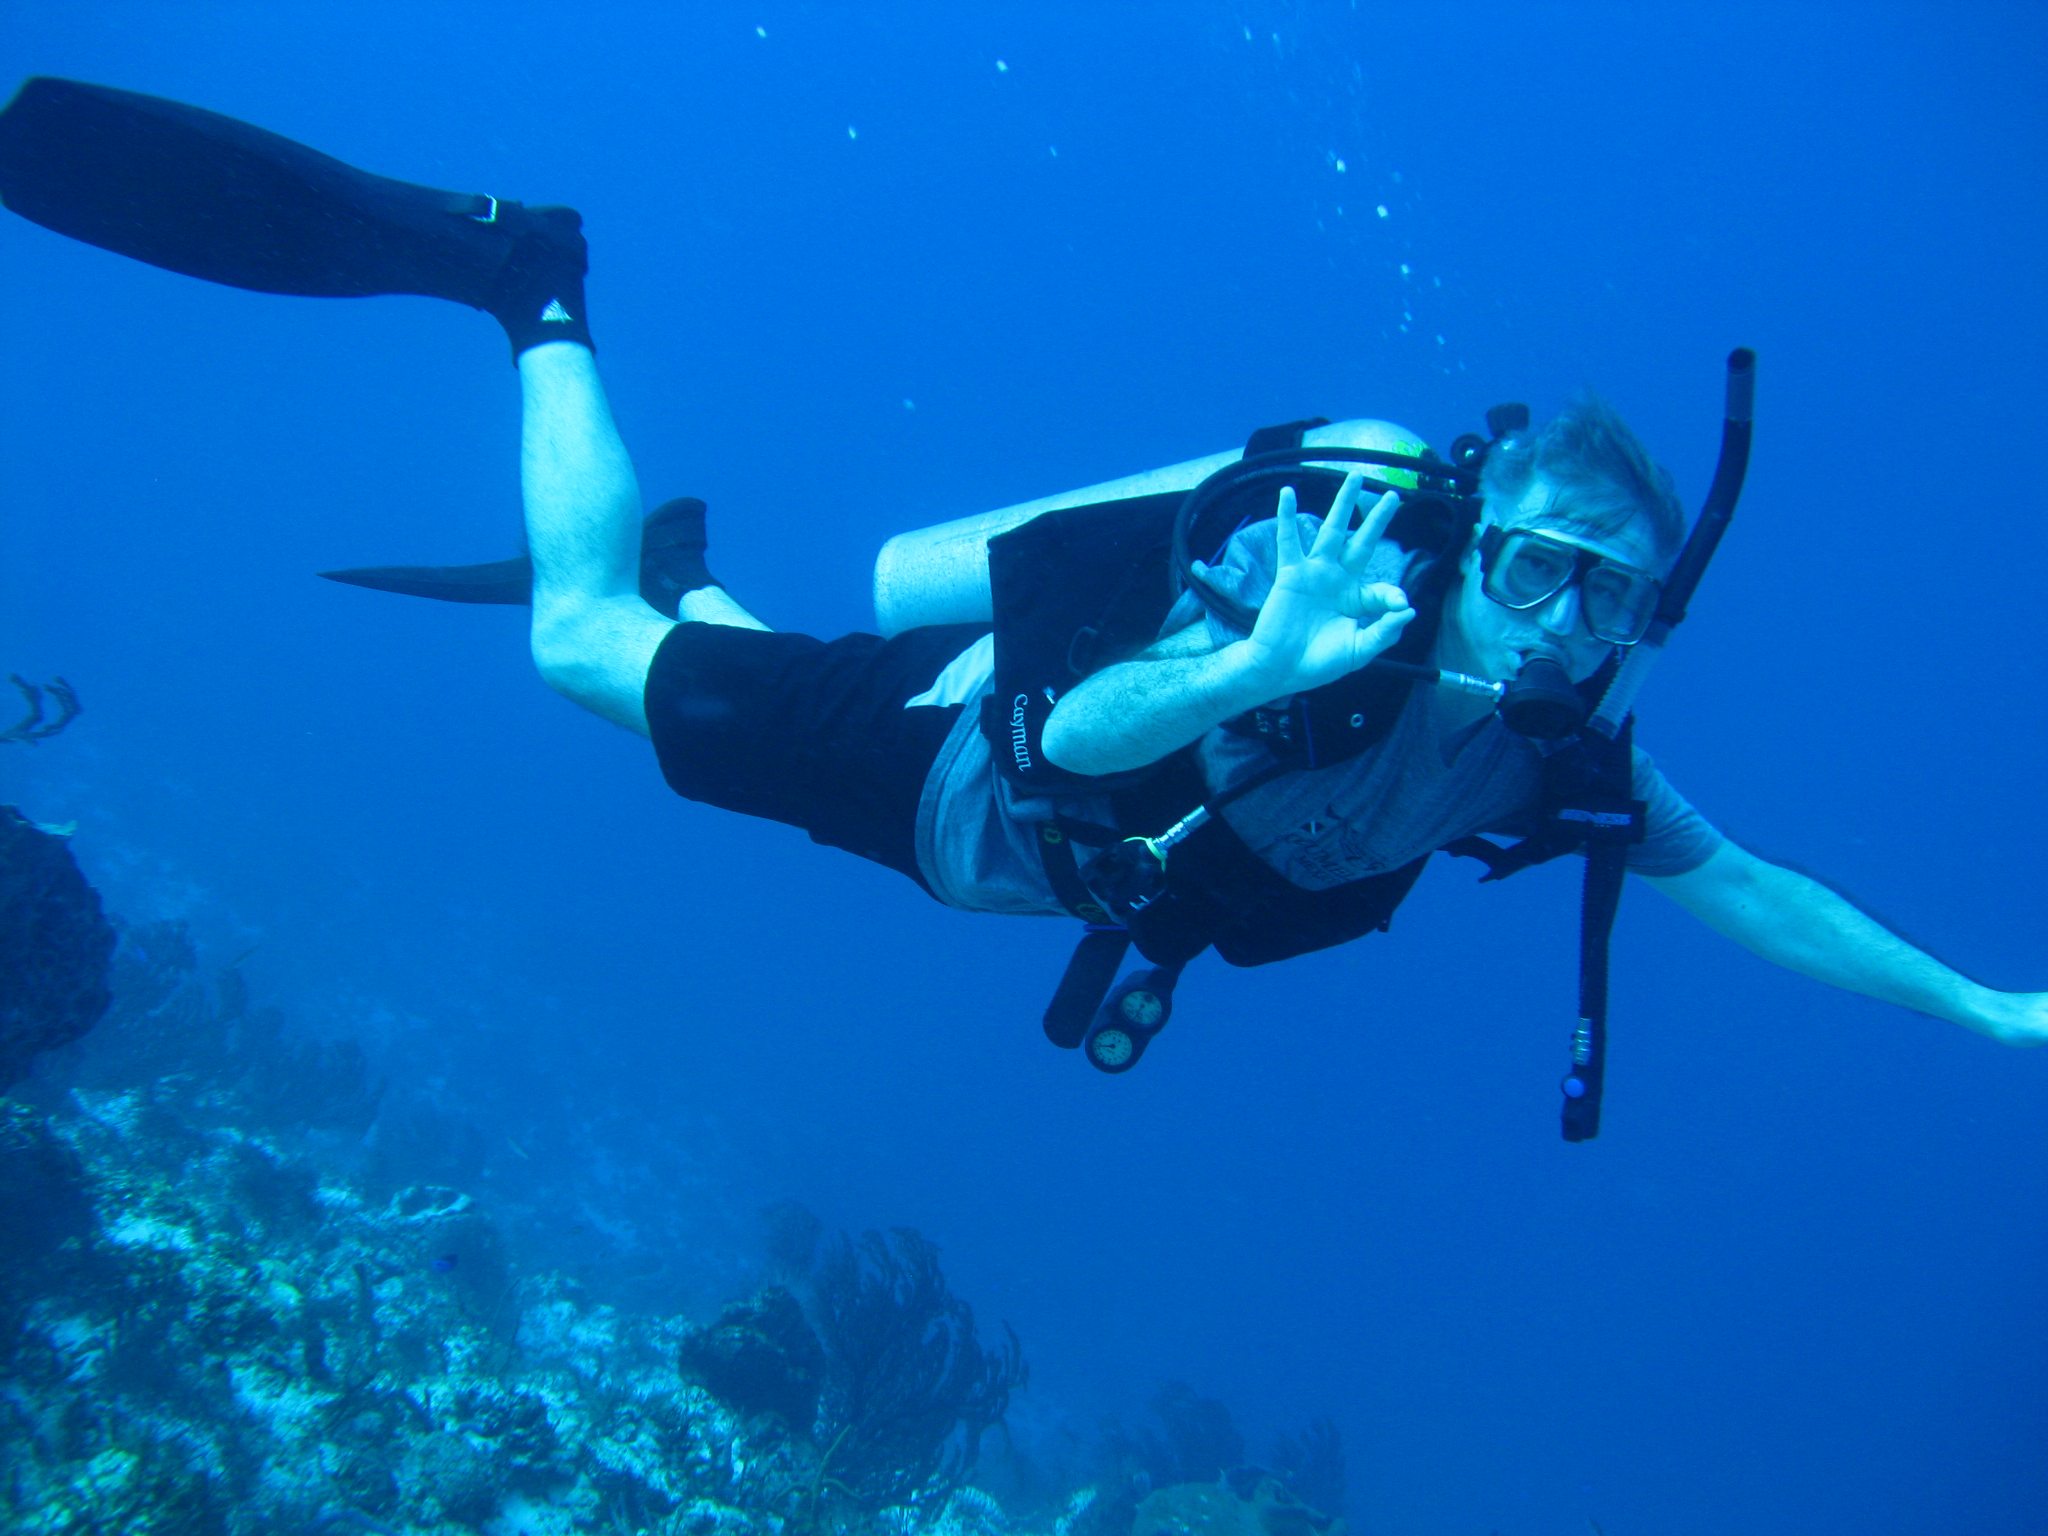 100 feet in Cozumel